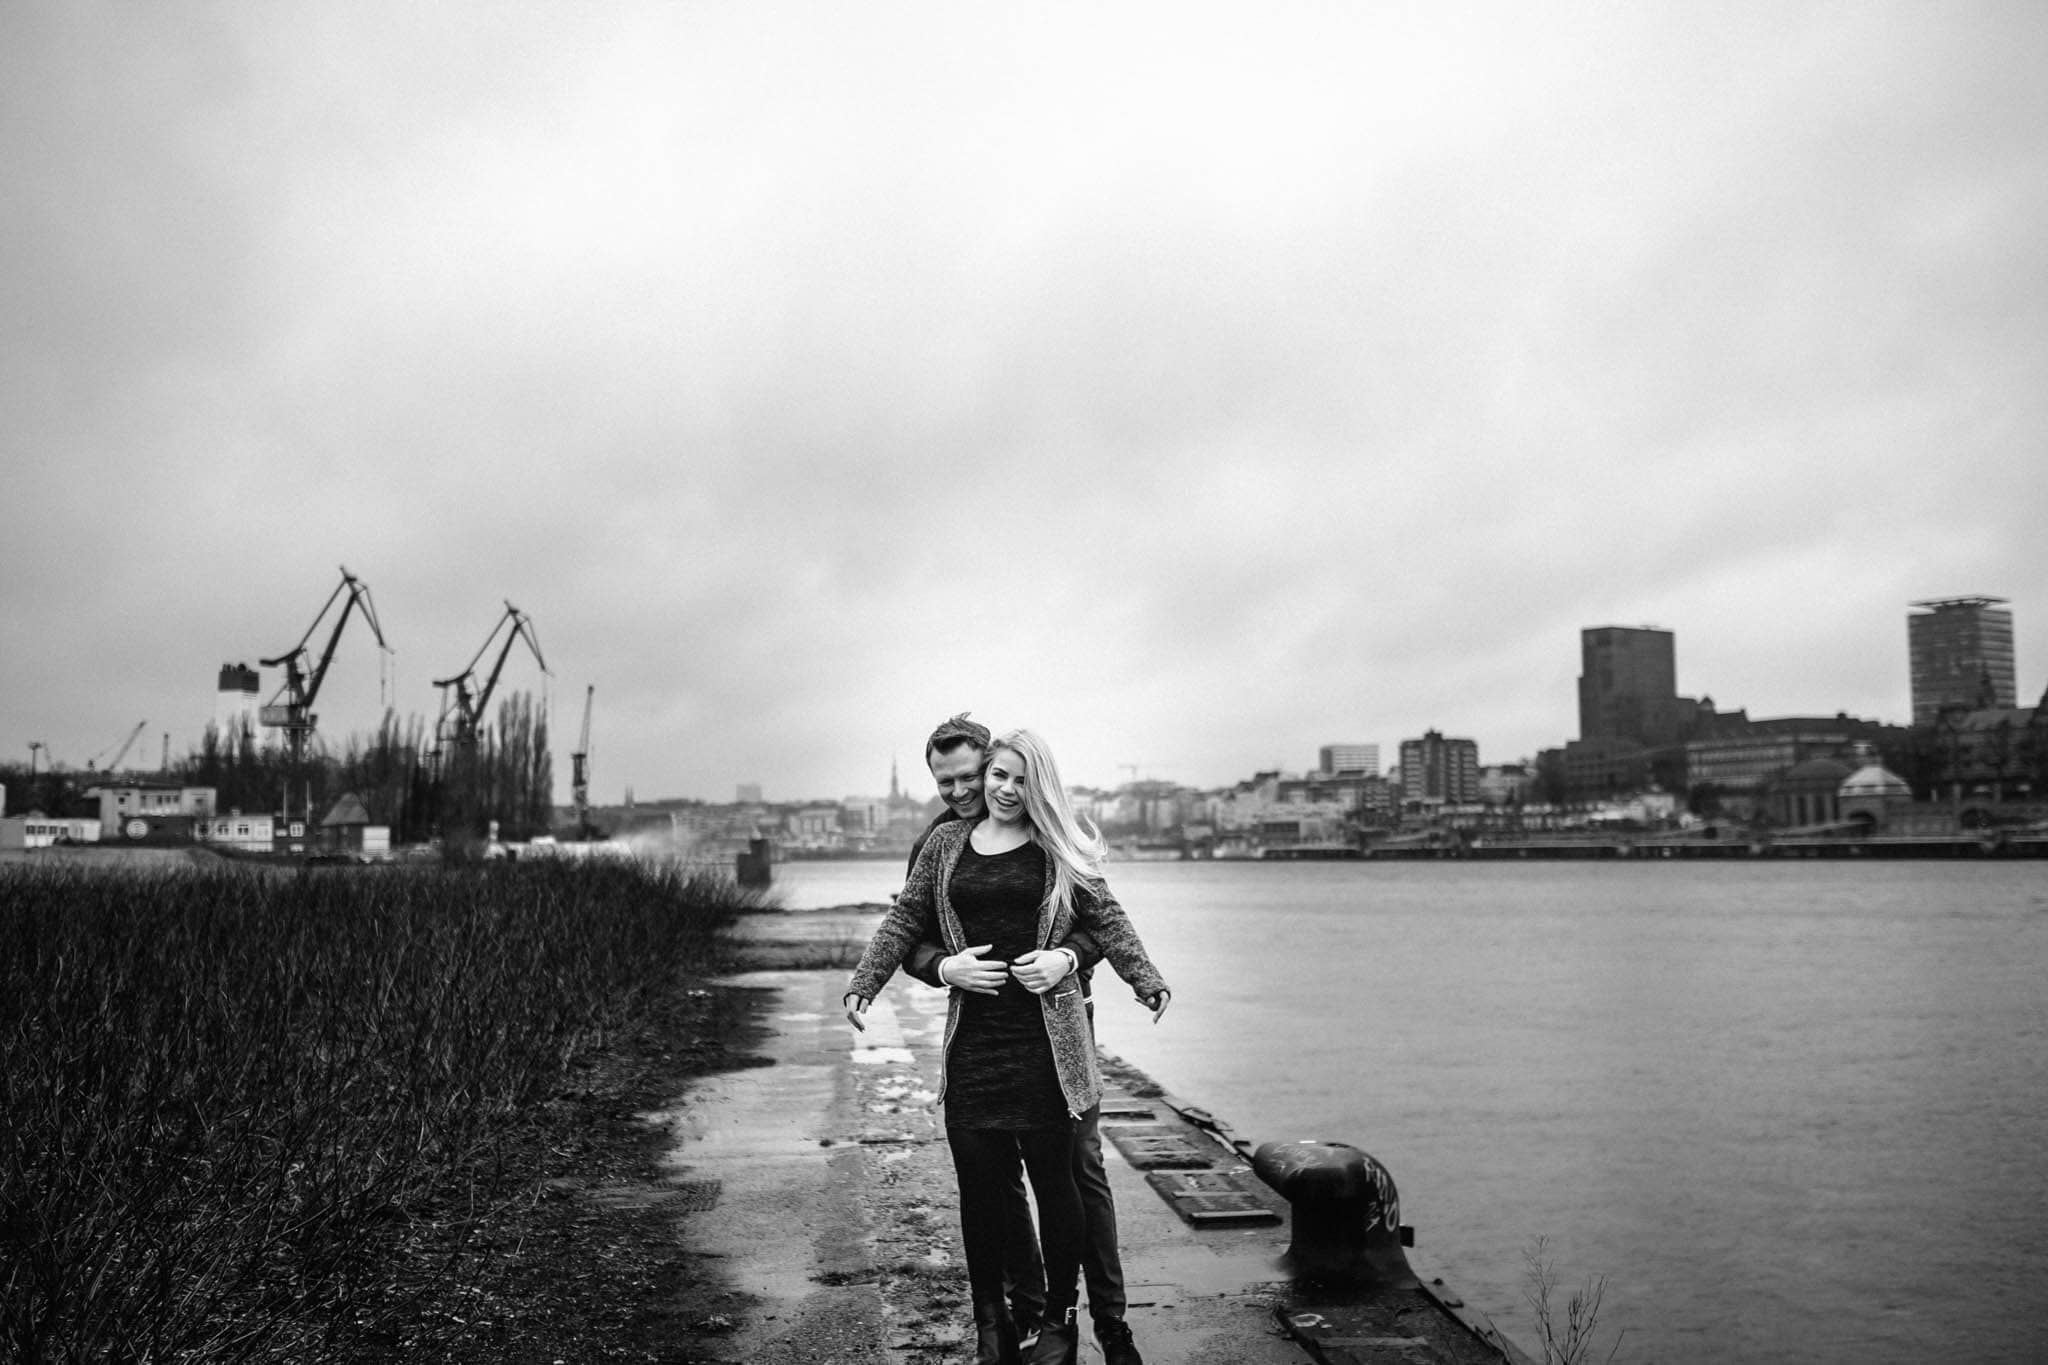 Engagementshooting, Hochzeitsfieber by Photo-Schomburg, Pärchenshoot, Hamburg, Elbe, Hamburger Hafen, Hochzeitsfotograf, Wedding, Coupleshoot, Hochzeitsfotografie-13